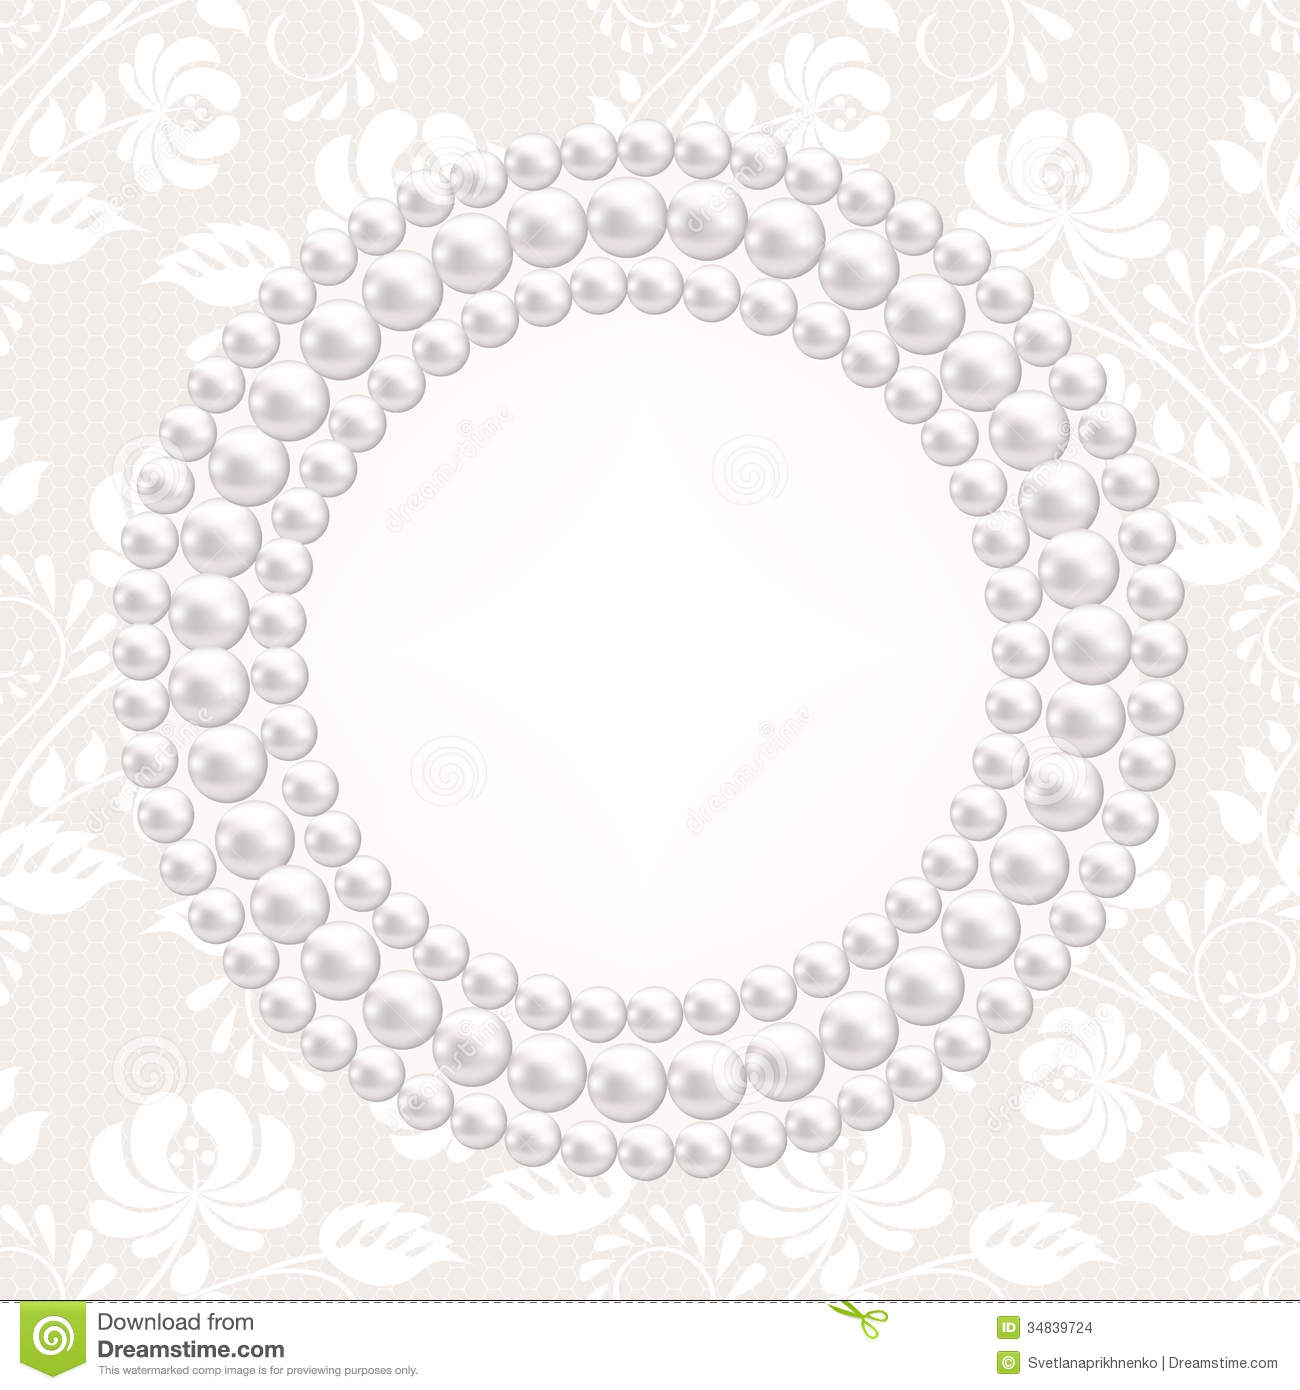 Displaying 19 Images For Pearls Border Clip Art #loagxY - Clipart Kid